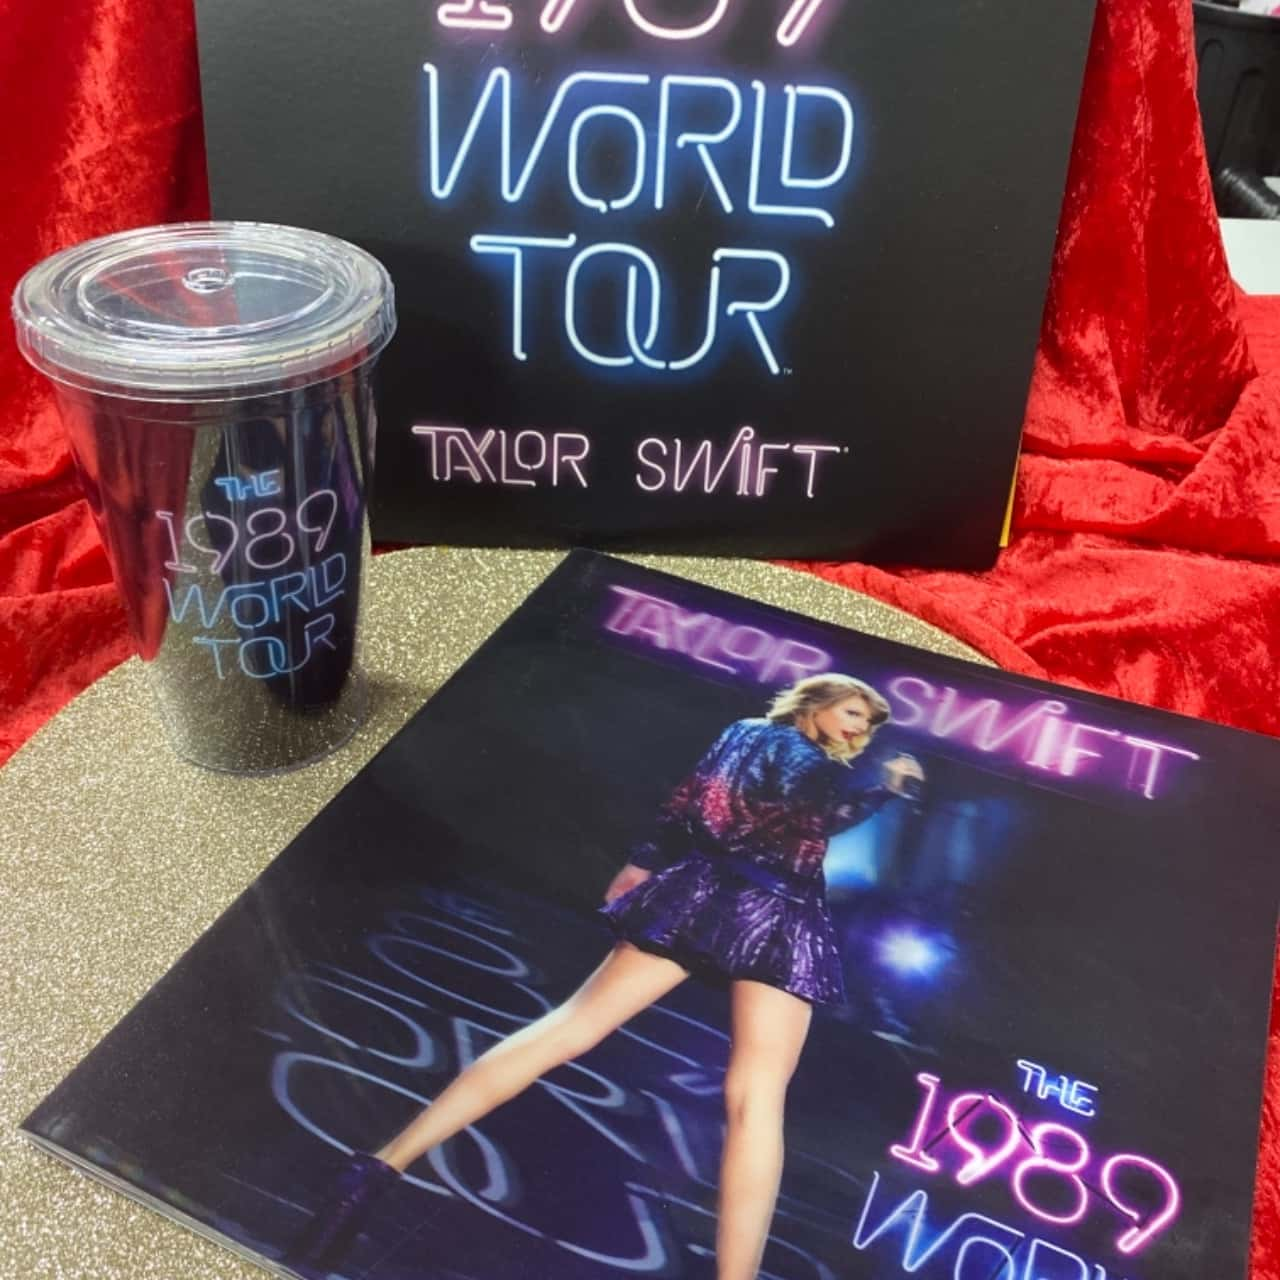 Taylor swift collection